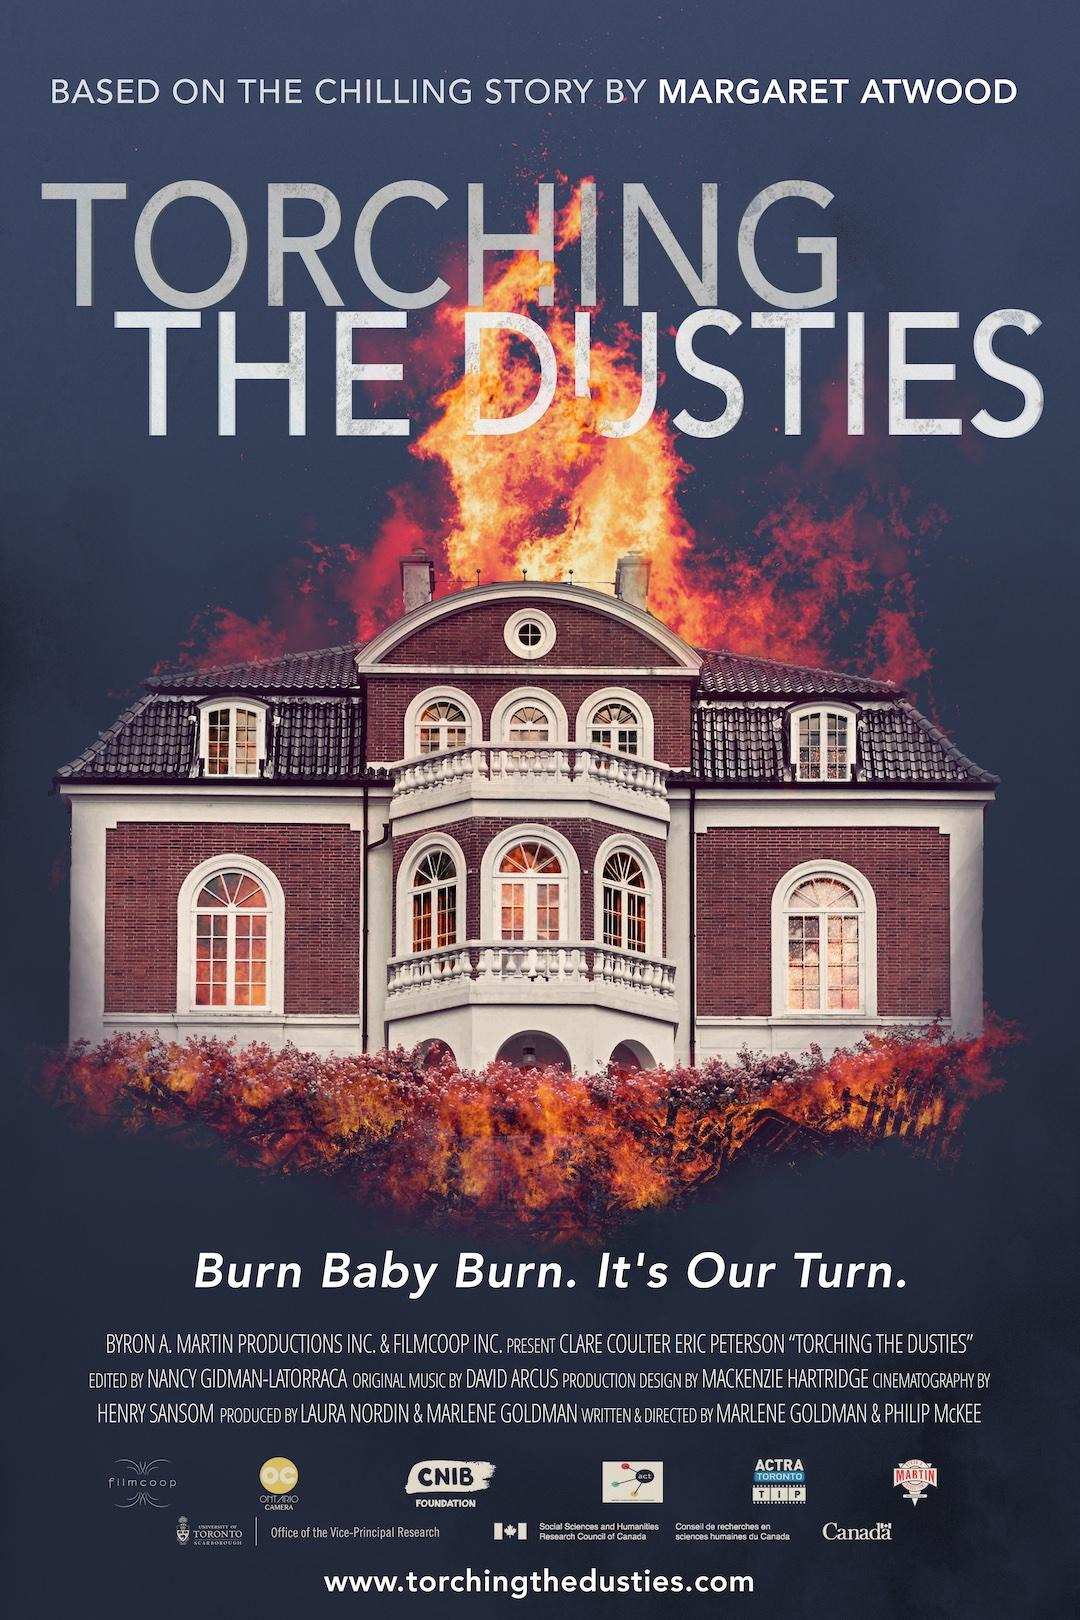 CANCELLED DUE TO COVID-19 Toronto Premiere of Torching the Dusties